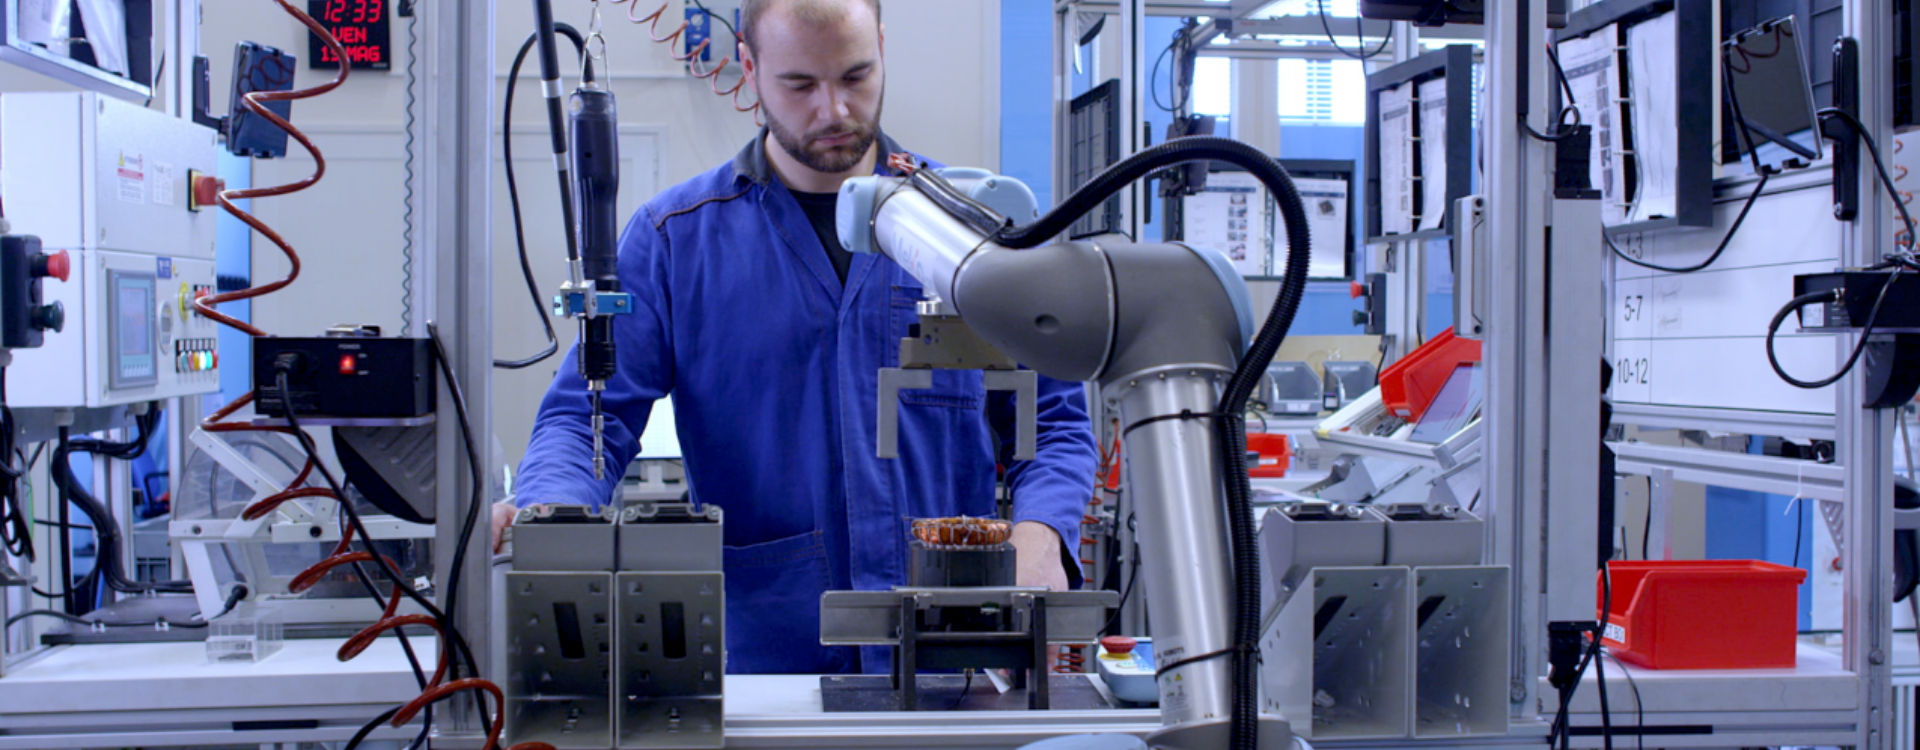 Focus tecnologie abilitanti: ADVANCED MANUFACTURING SOLUTION